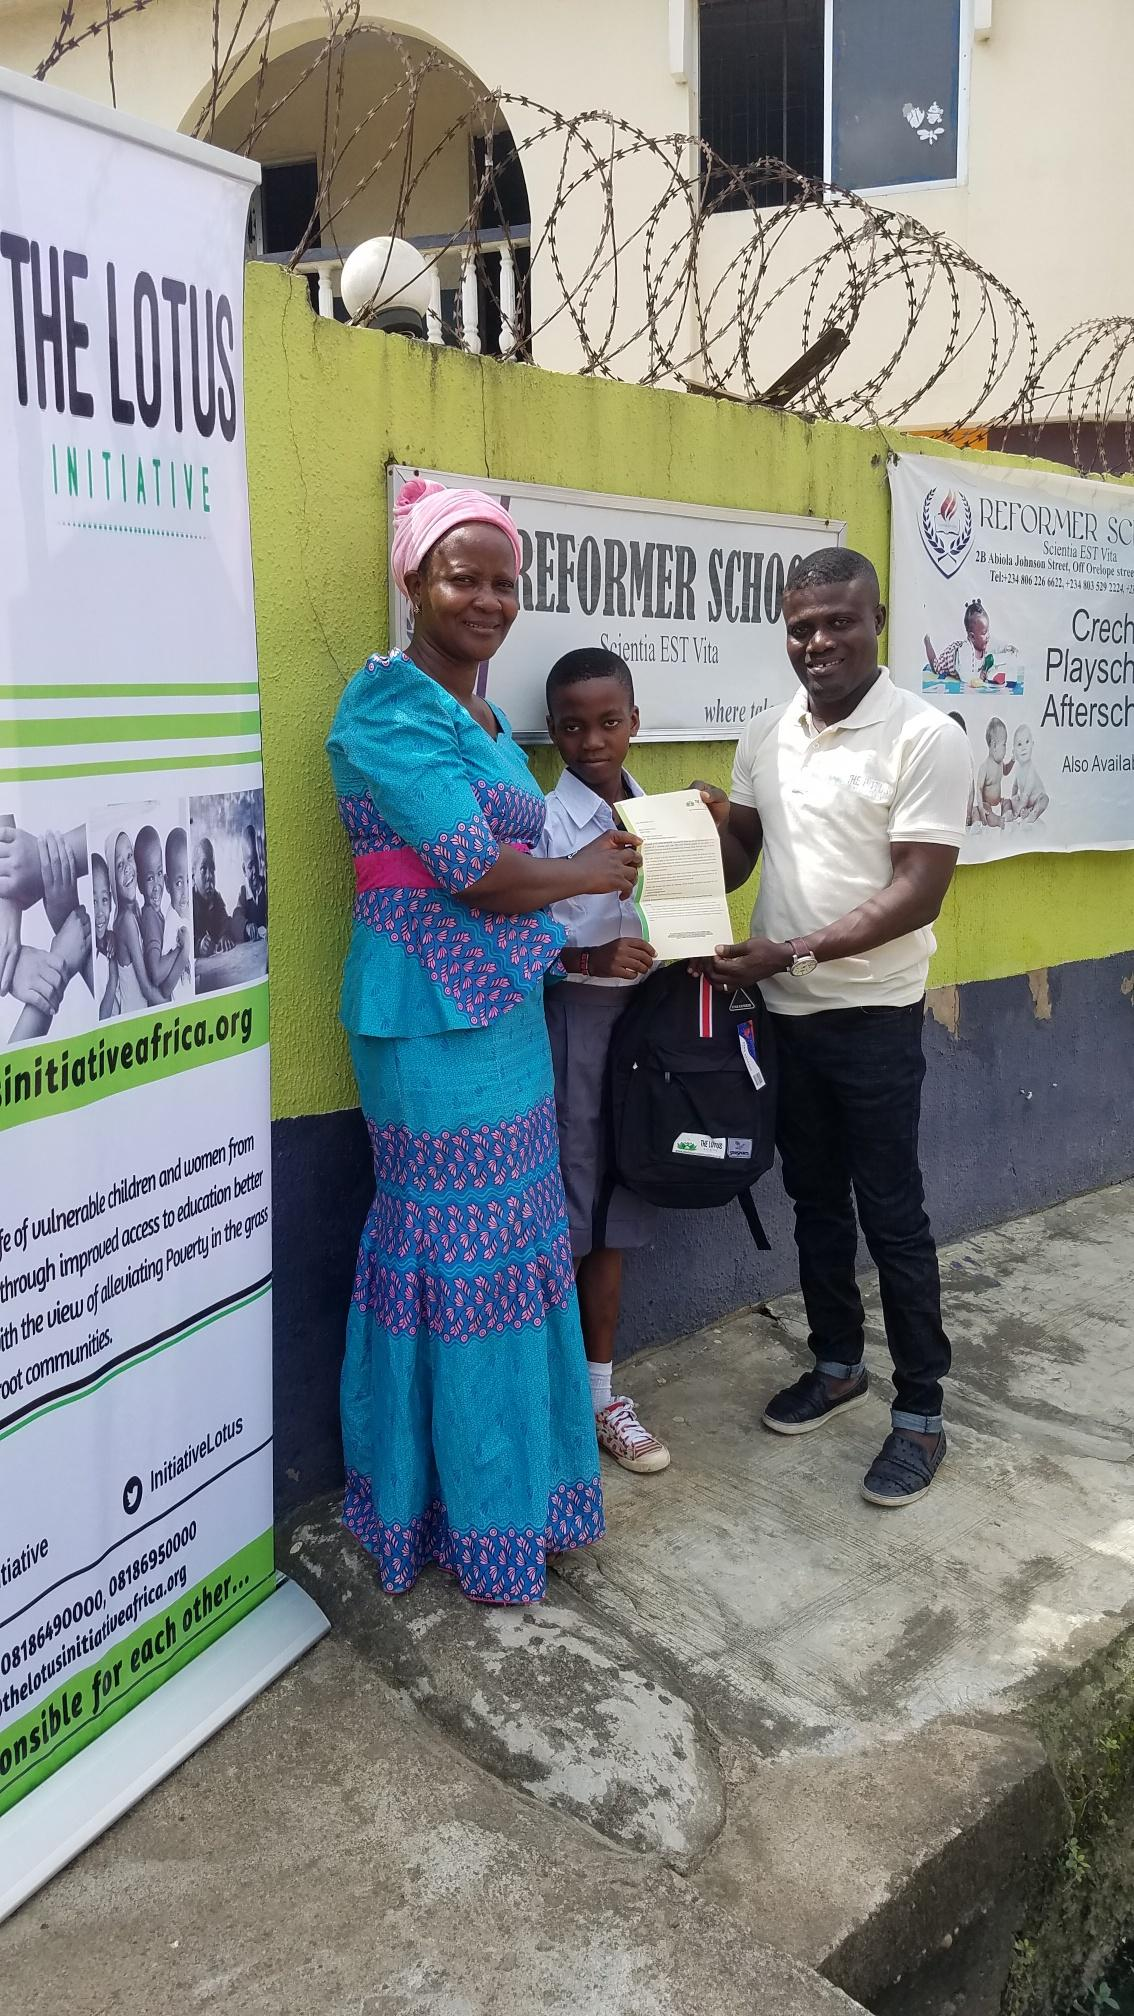 Lotus Initiative Manager with Master Samuel Kareem with his Mother.